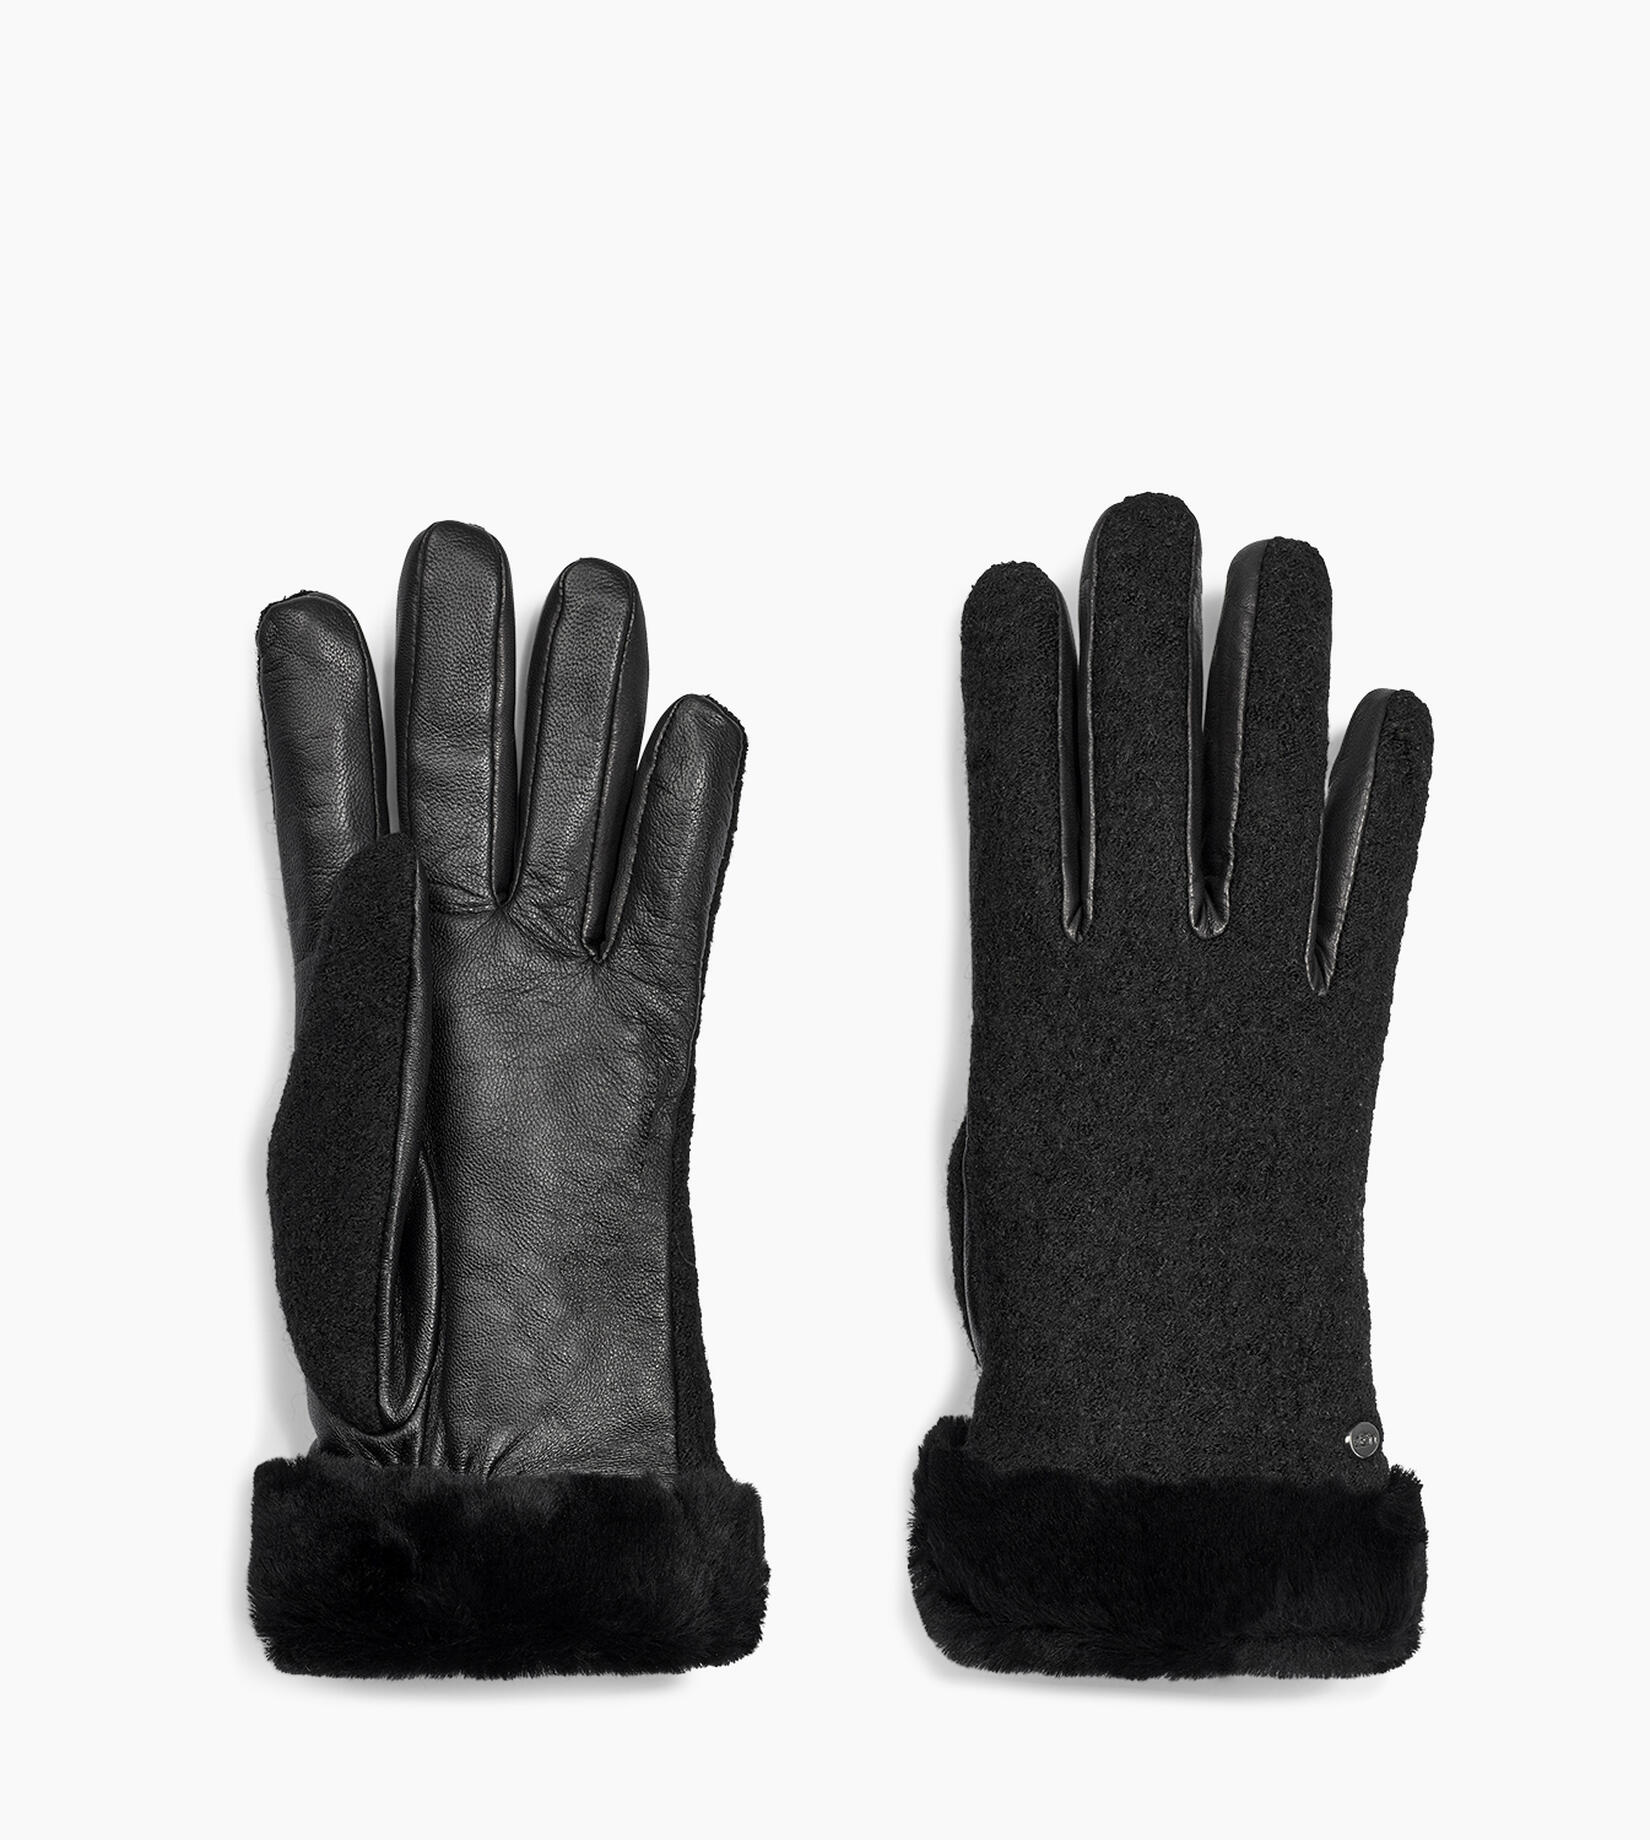 Fabric Leather Shorty Glove